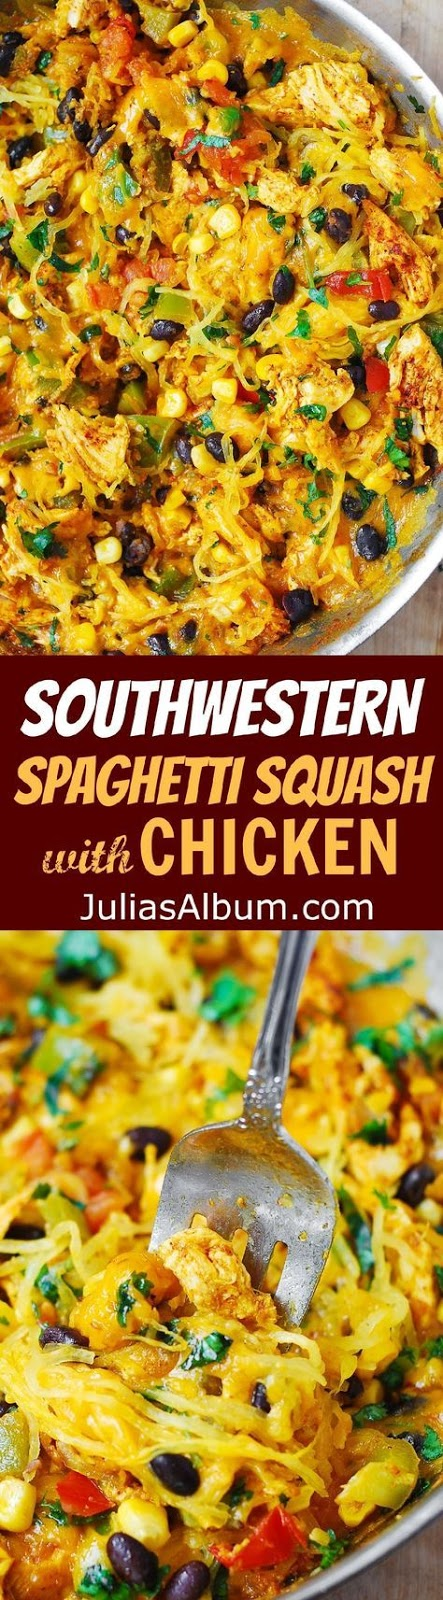 Southwestern Spaghetti Squash with Chicken